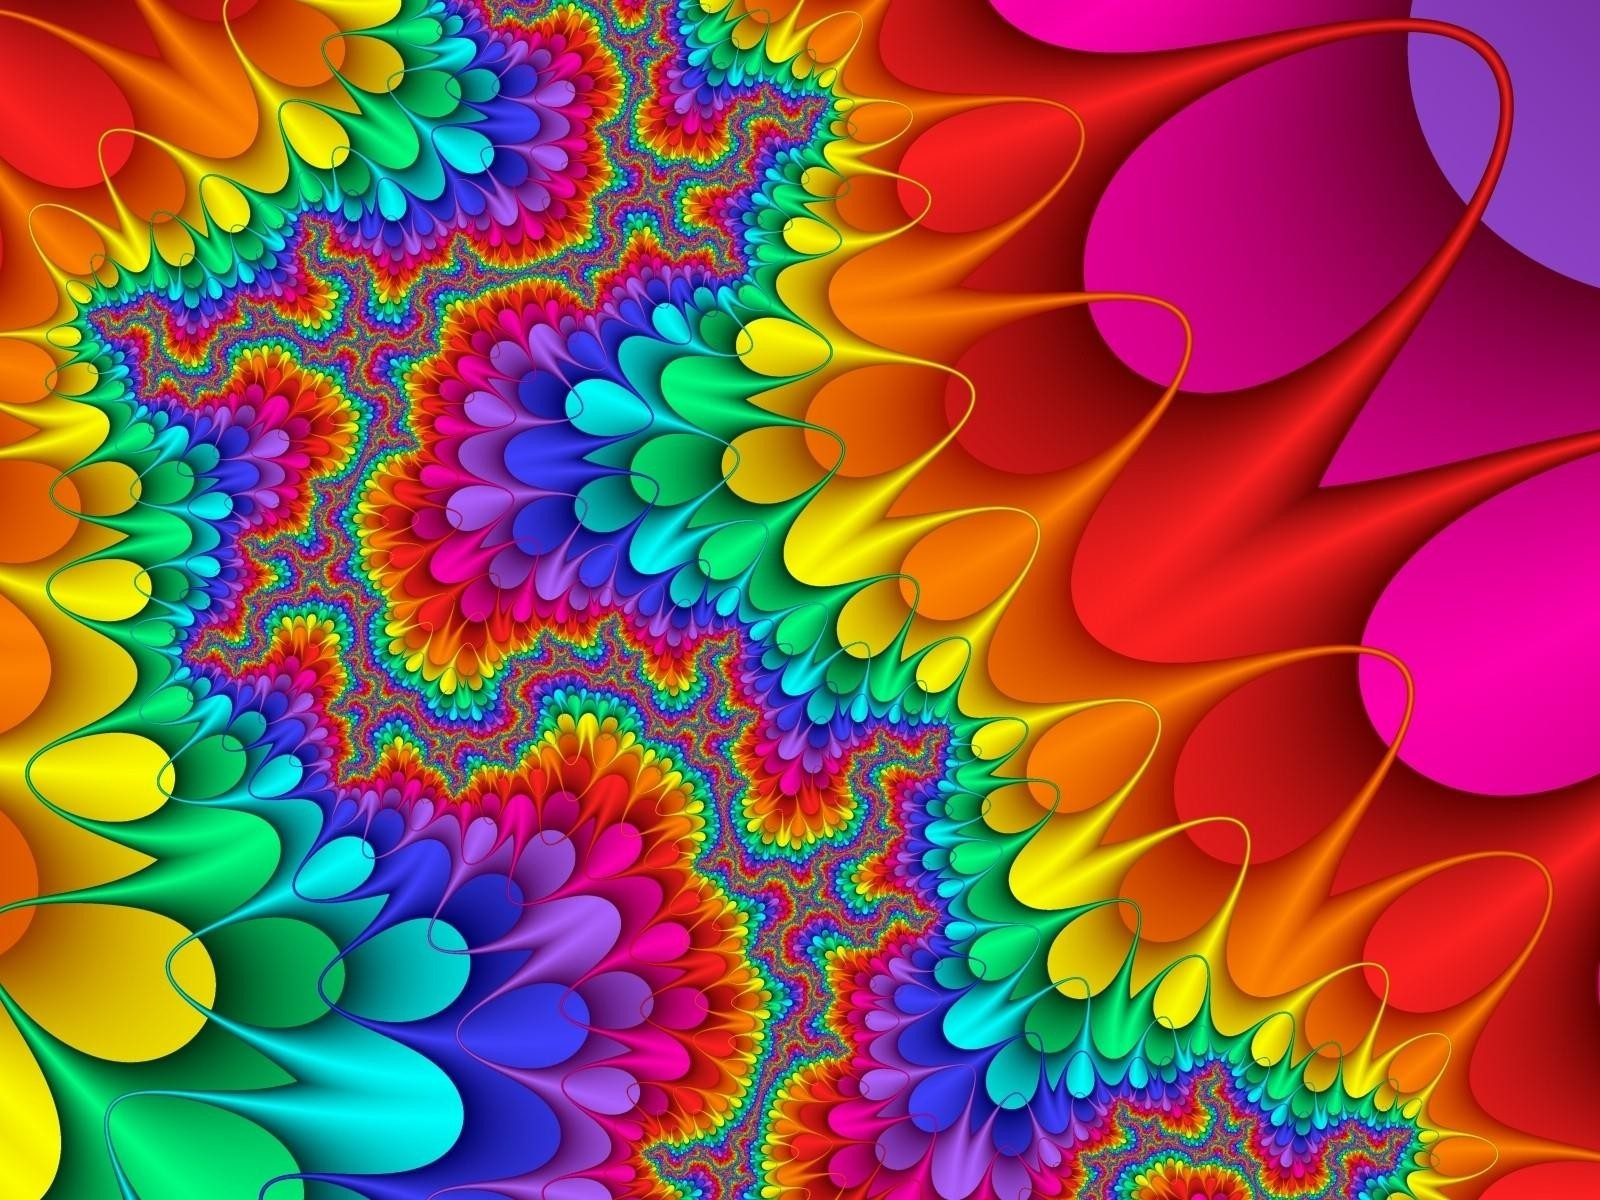 bright colorful backgrounds wallpaper